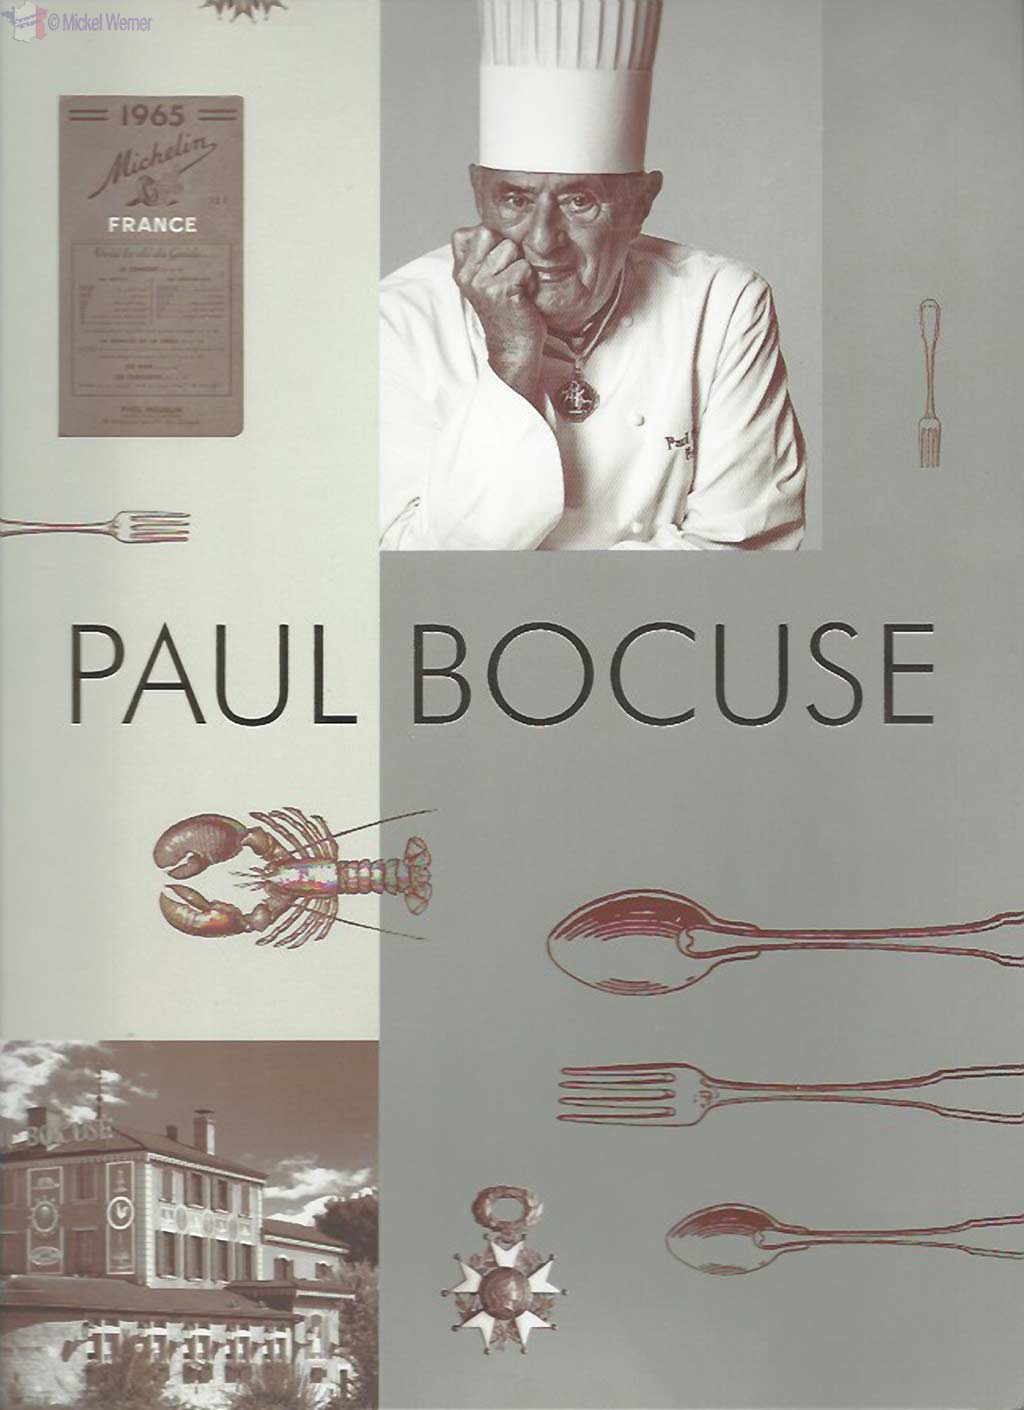 Paul Bocuse menu cover